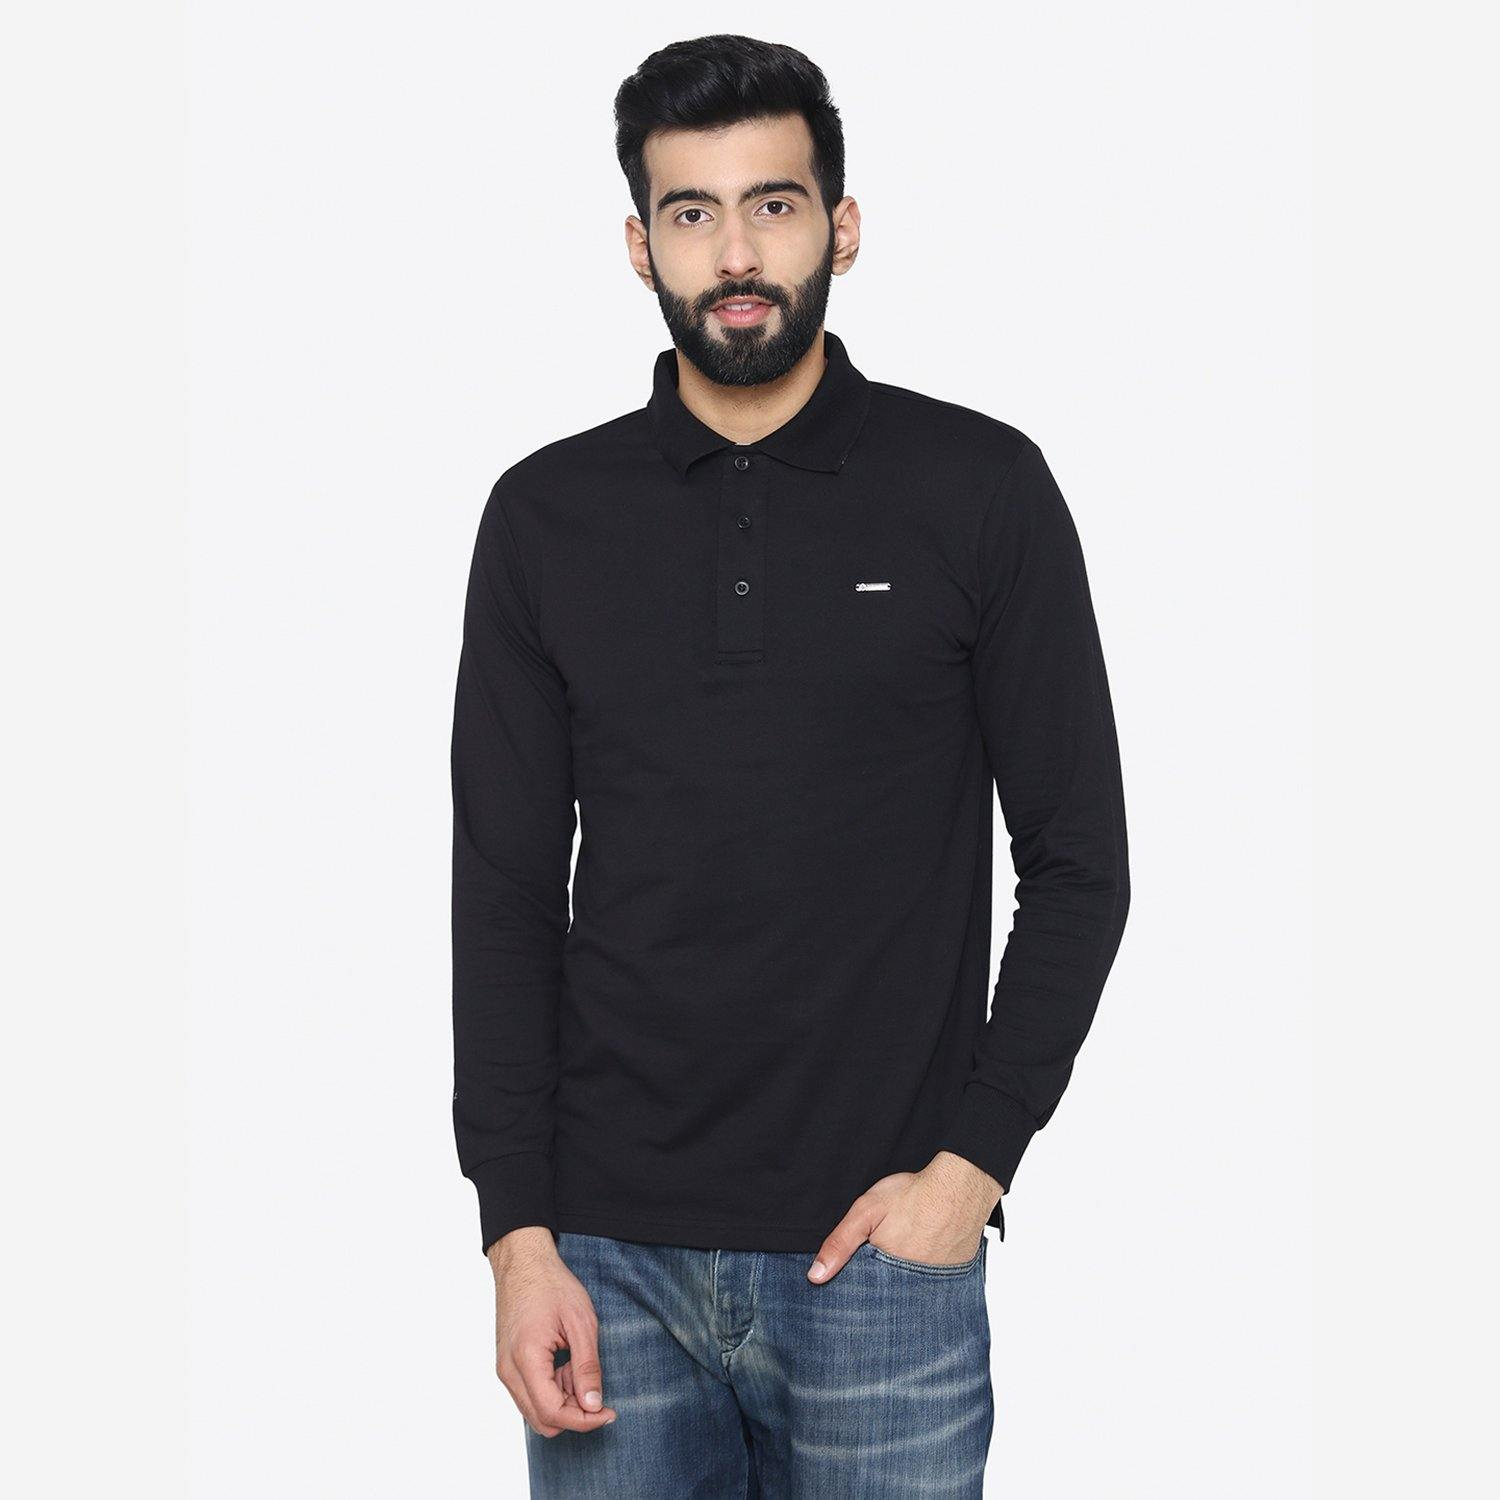 Men's Winter Wear Stylish Sweatshirt - Black